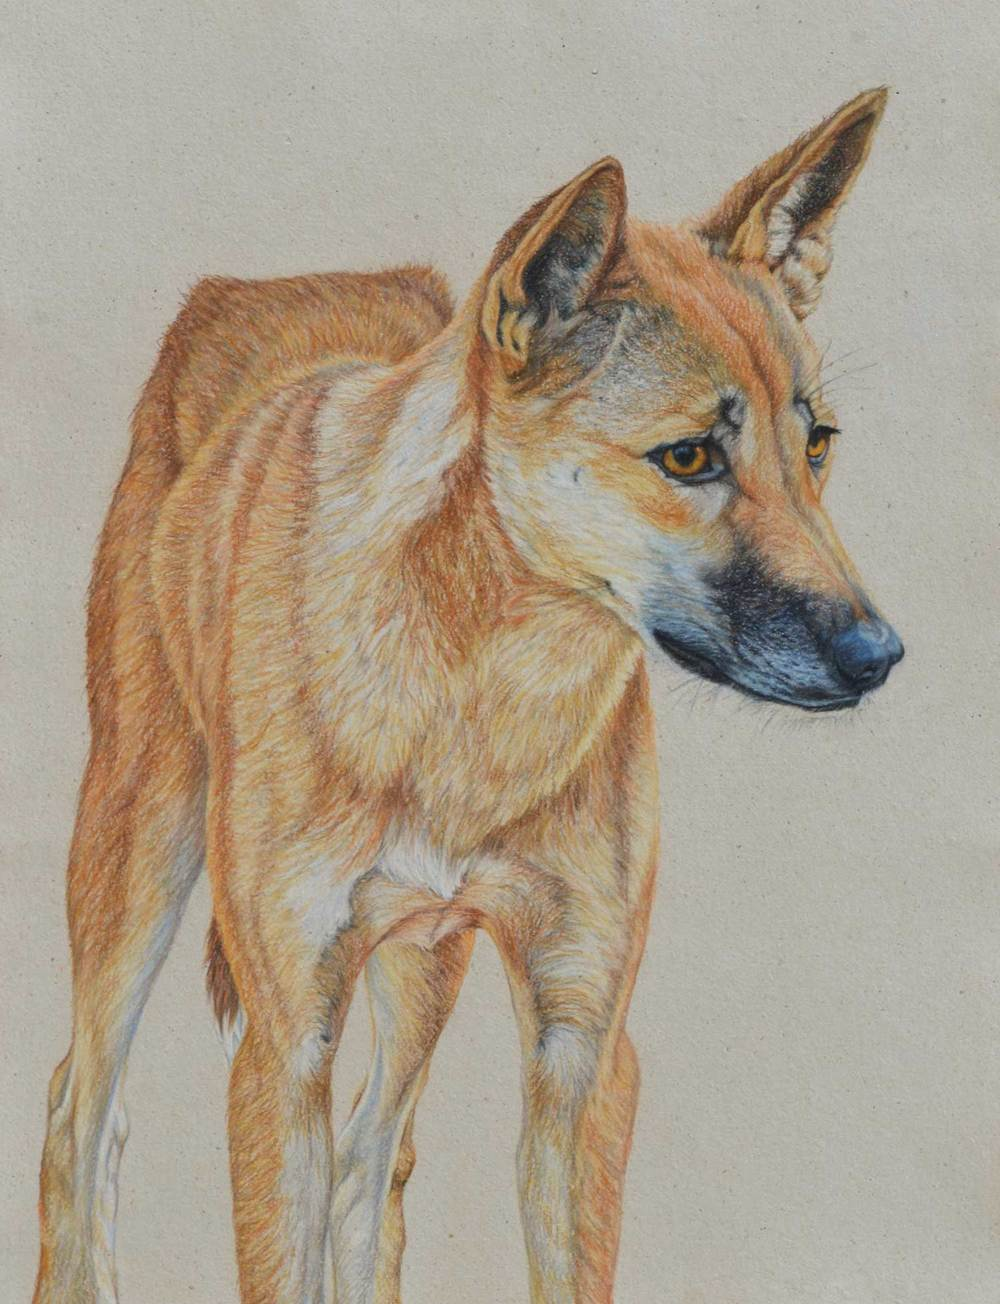 dingo-drawing-rachel-newling.jpg